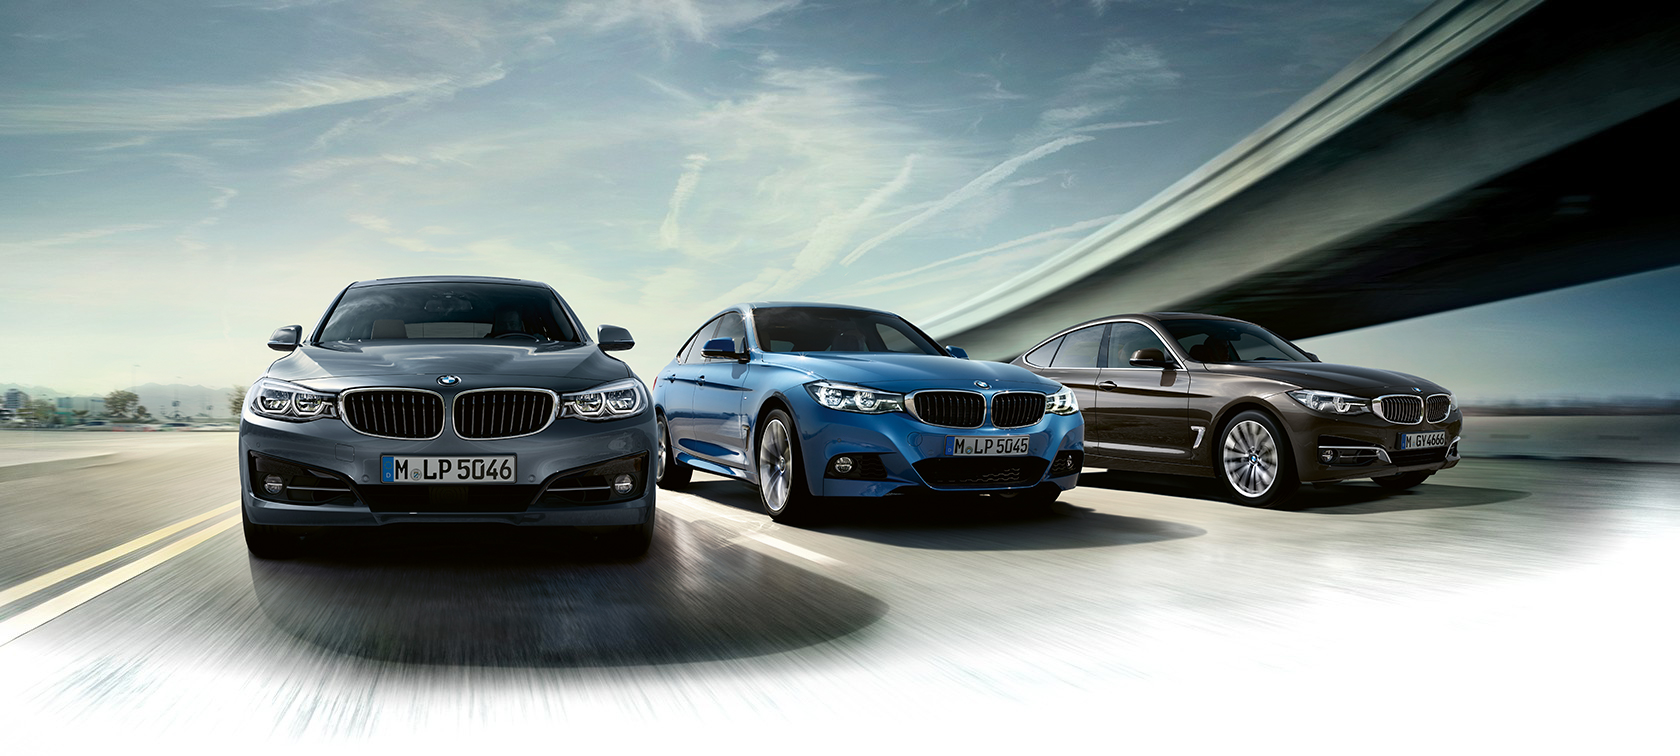 BMW 3 Series Gran Turismo in grey, blue and brown metallic colours on the racetrack.